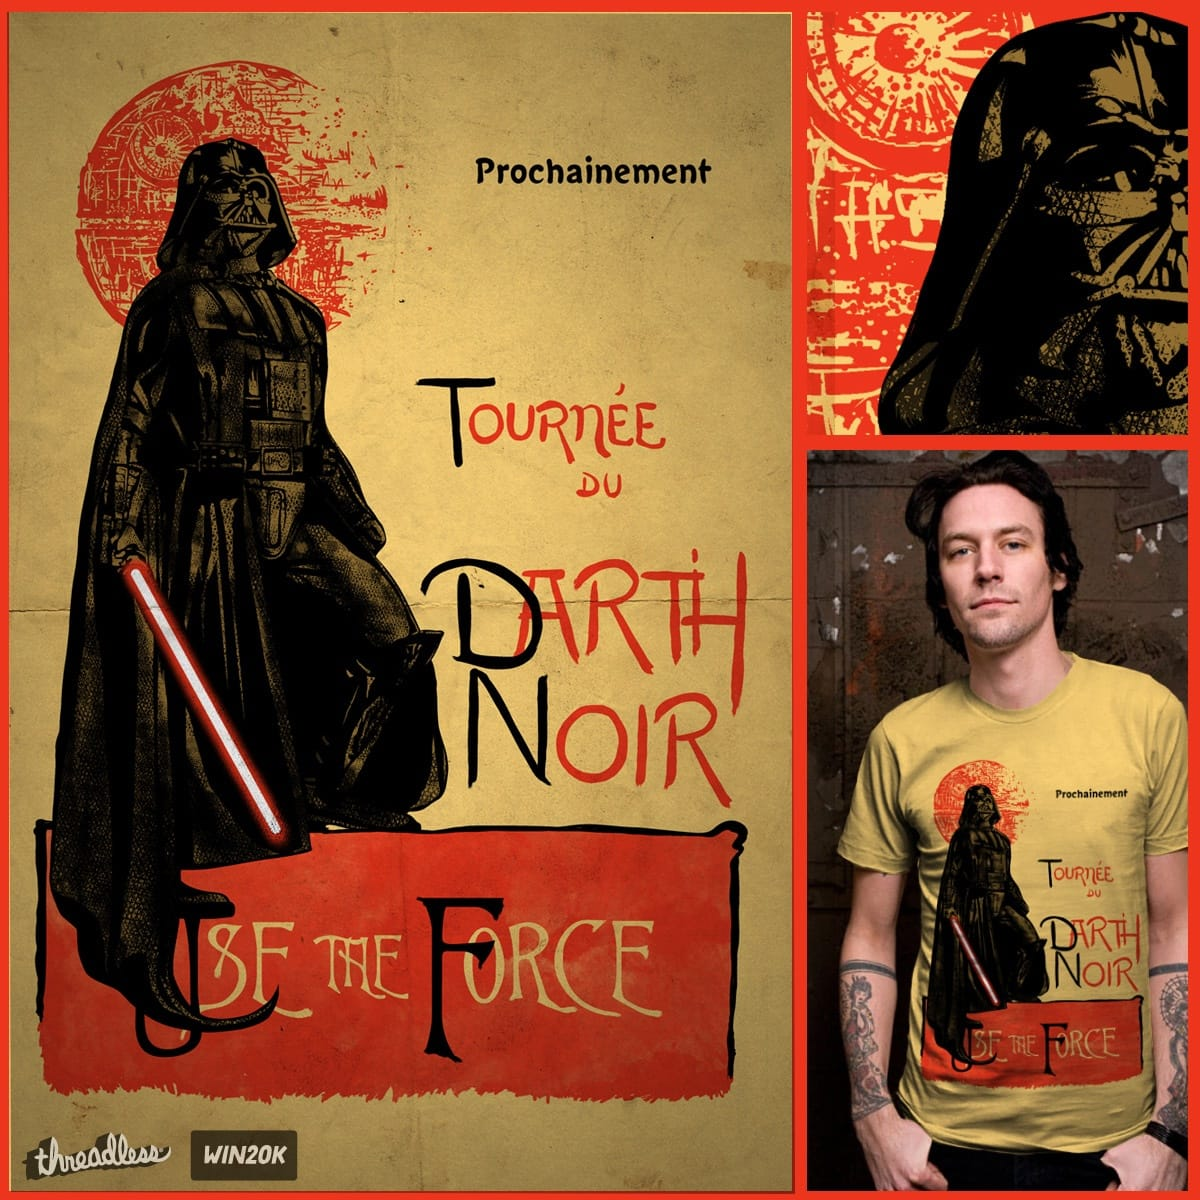 Darth Noir by kooky love on Threadless